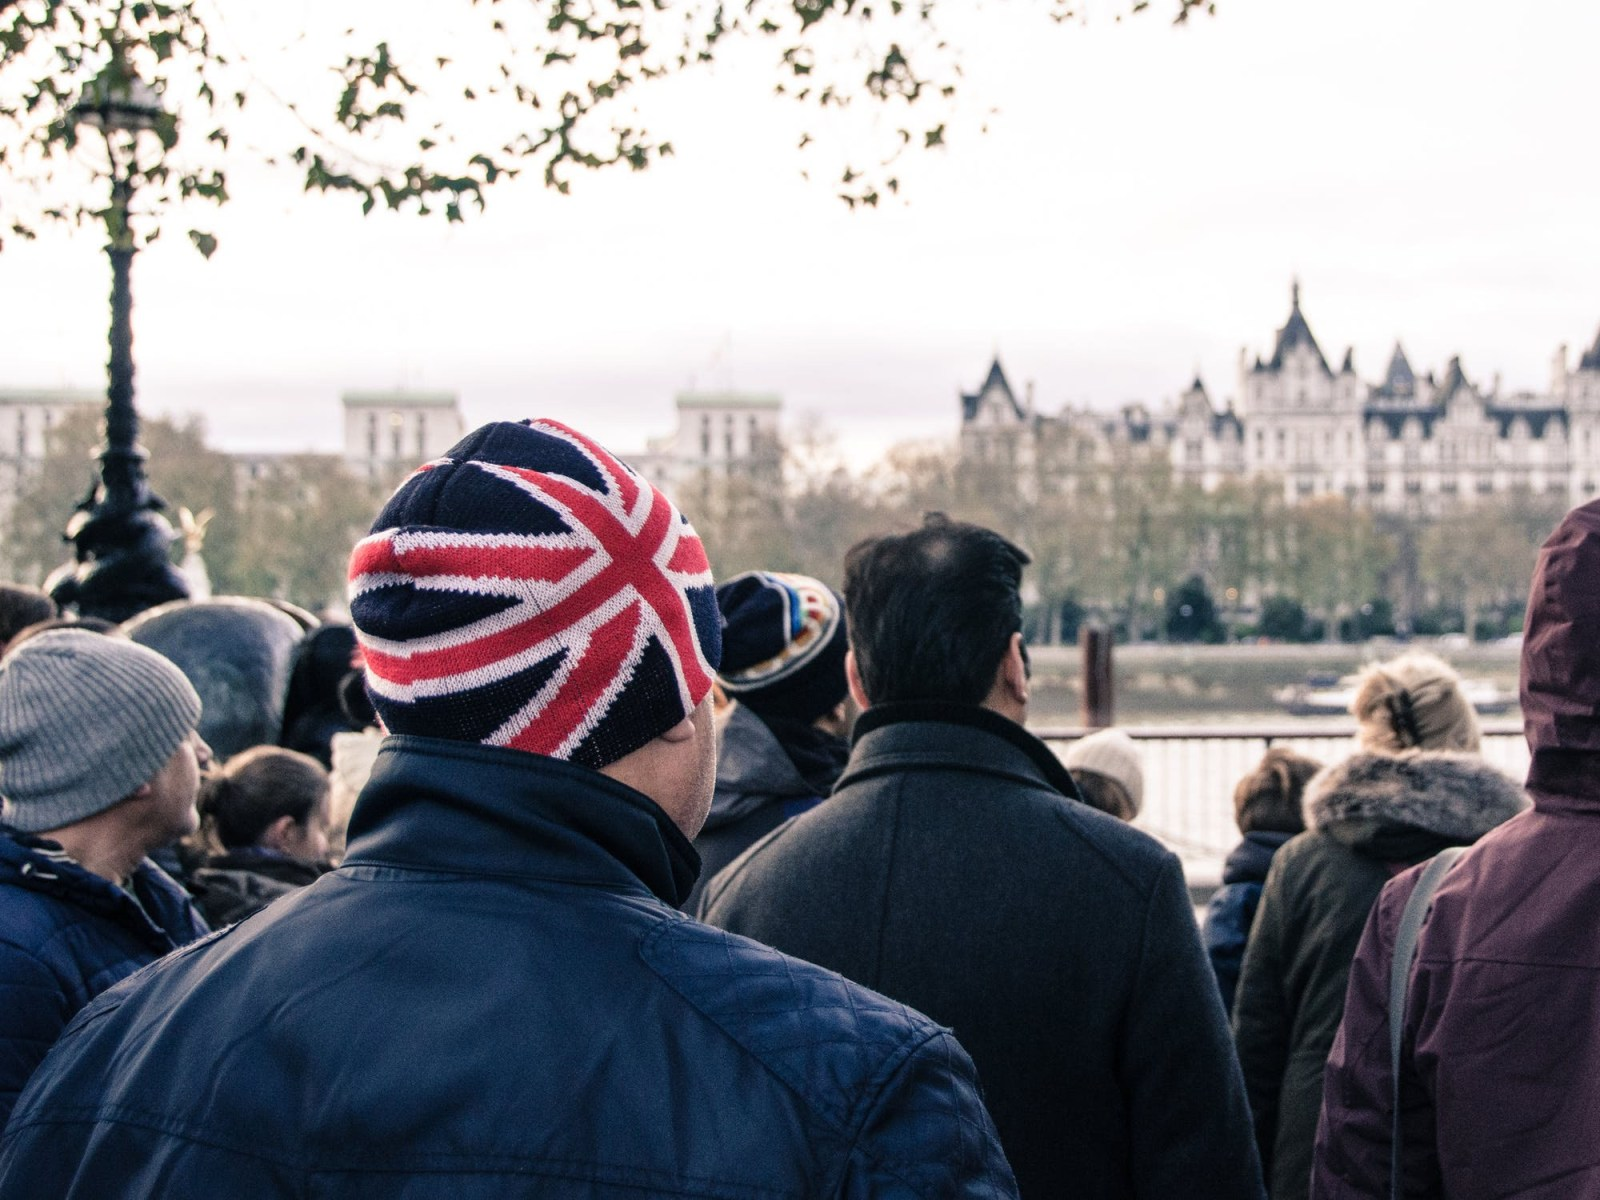 The UK gives people a lot of false expectations in regards to what the country is actually like. Here are some of those expectations and realities.